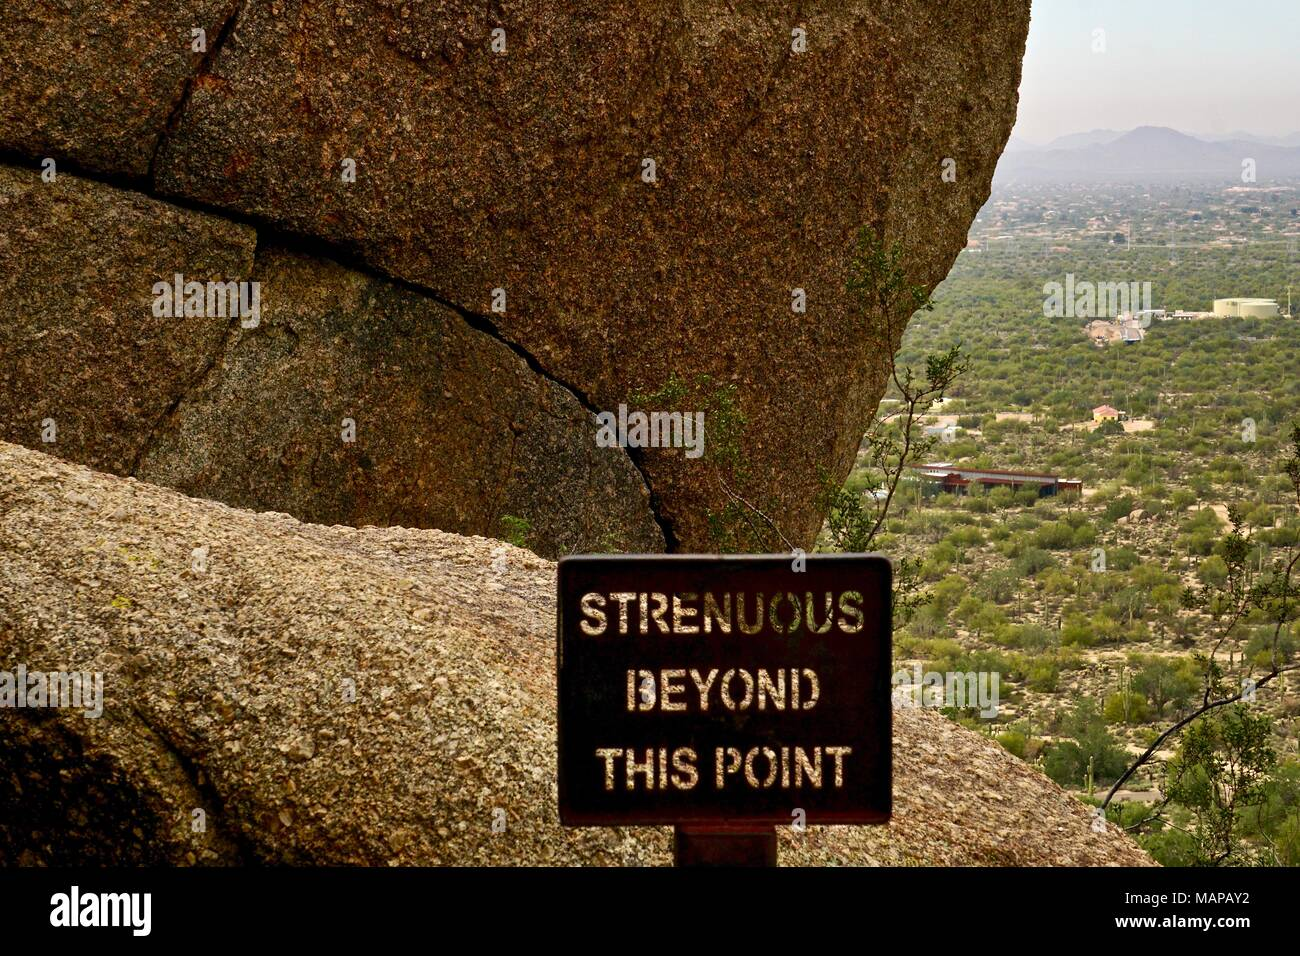 signage on hiking trail in Arizona warning of difficulty - Stock Image